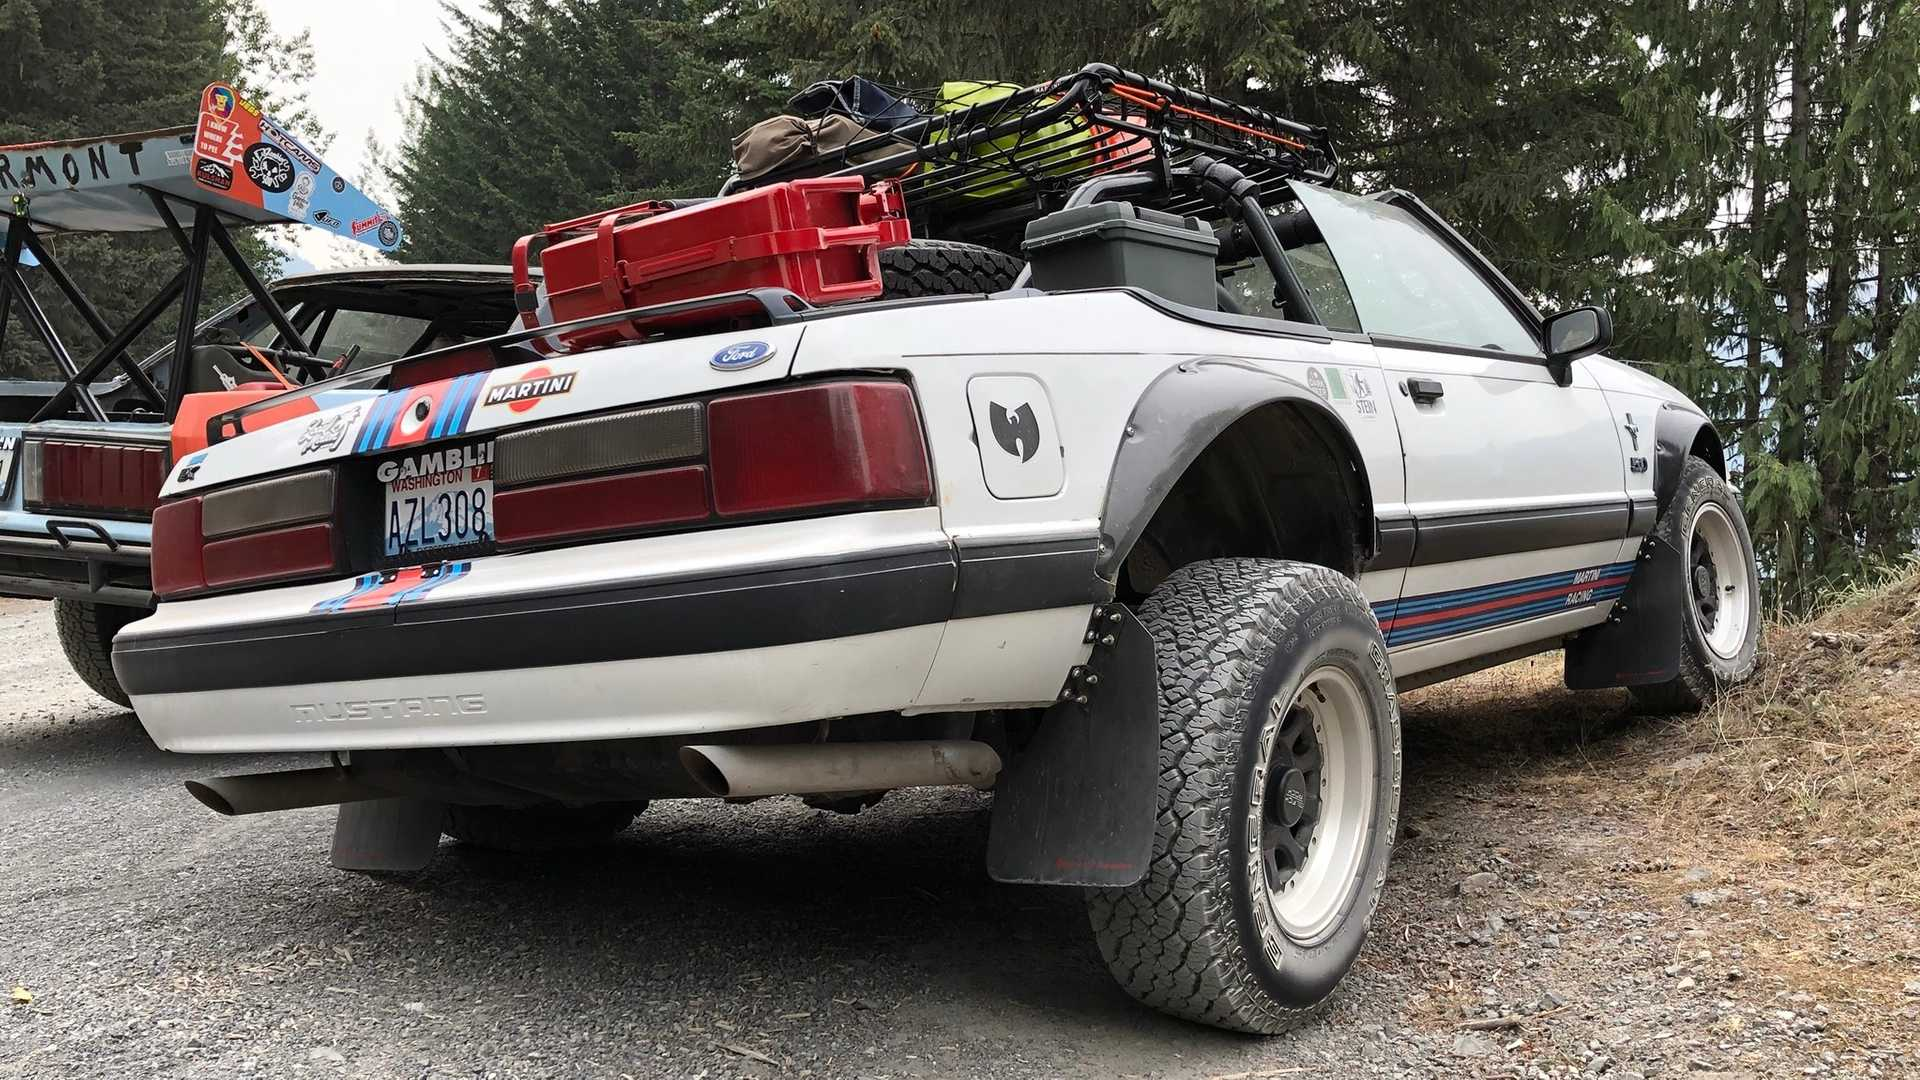 Bonkers Baja Ford Mustang Is The Pony Car Crossover We